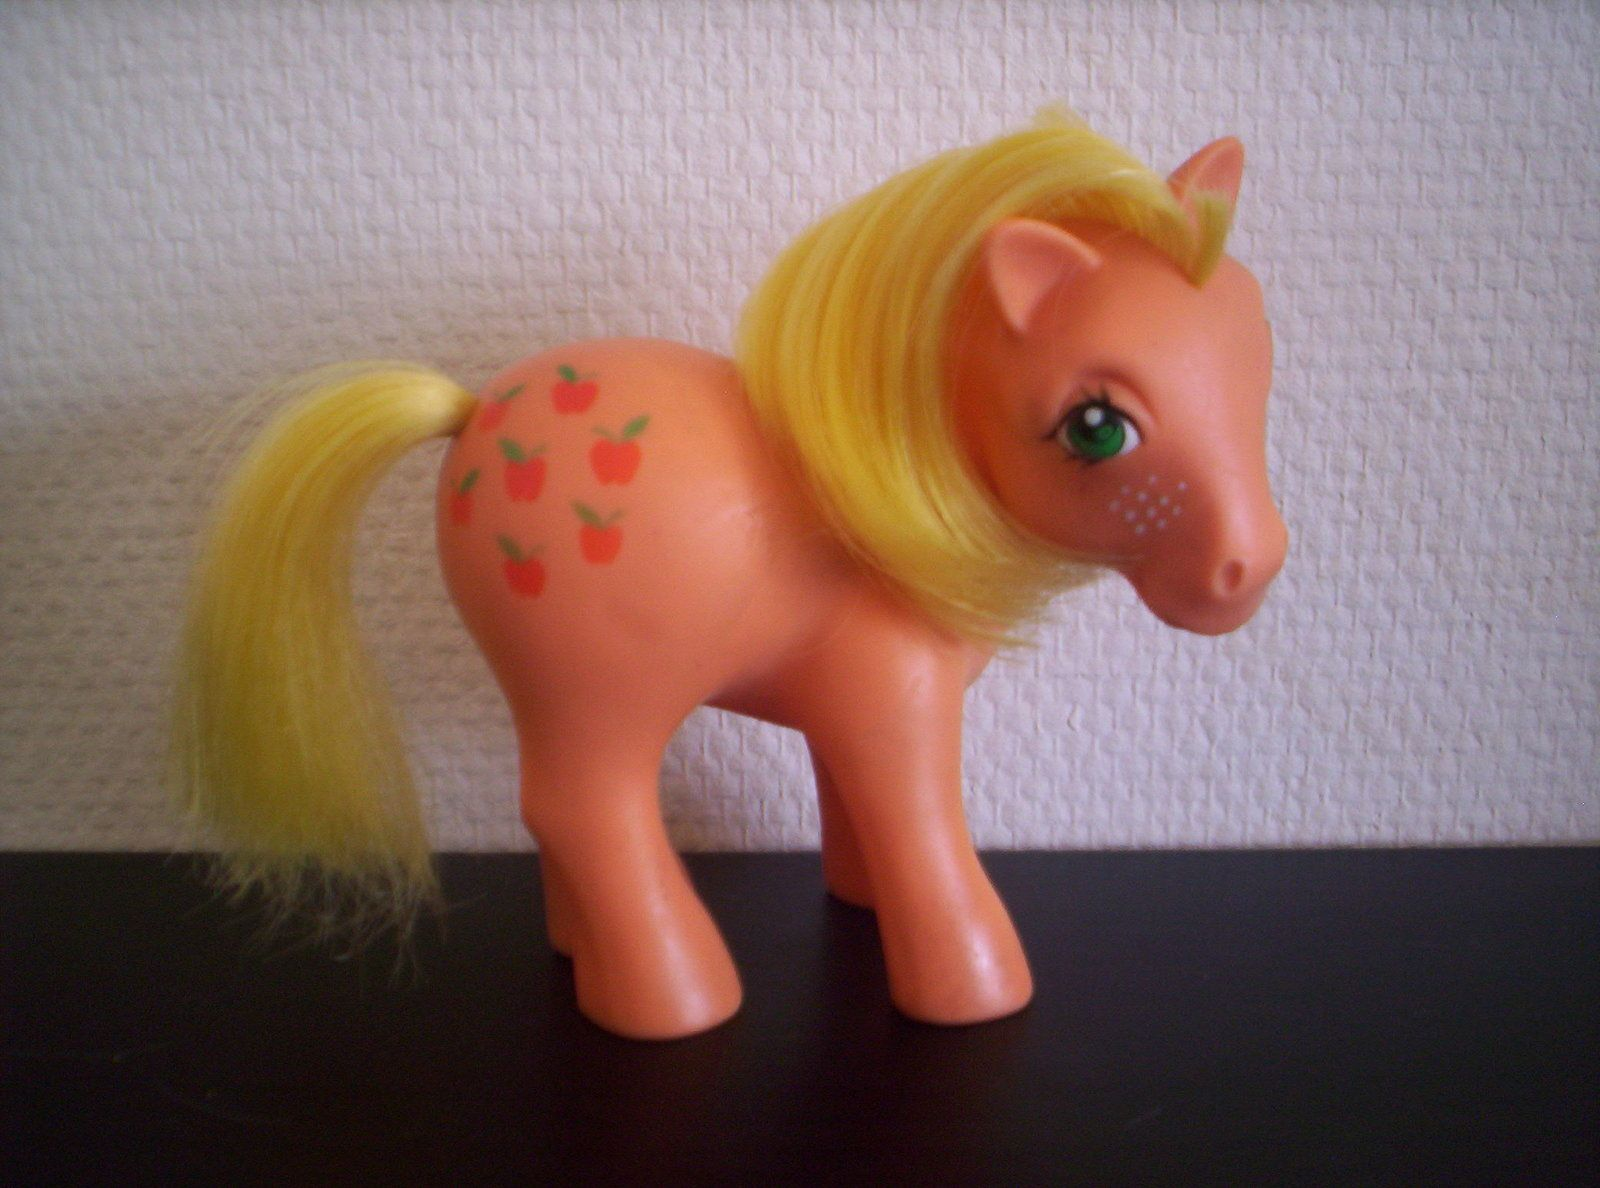 Apple Jack, 83 MADE IN FRAAAAAAAAAAAAAAAAAAAAAAANNNNNNNNNNNNNCE !!!!!!!!!!!!